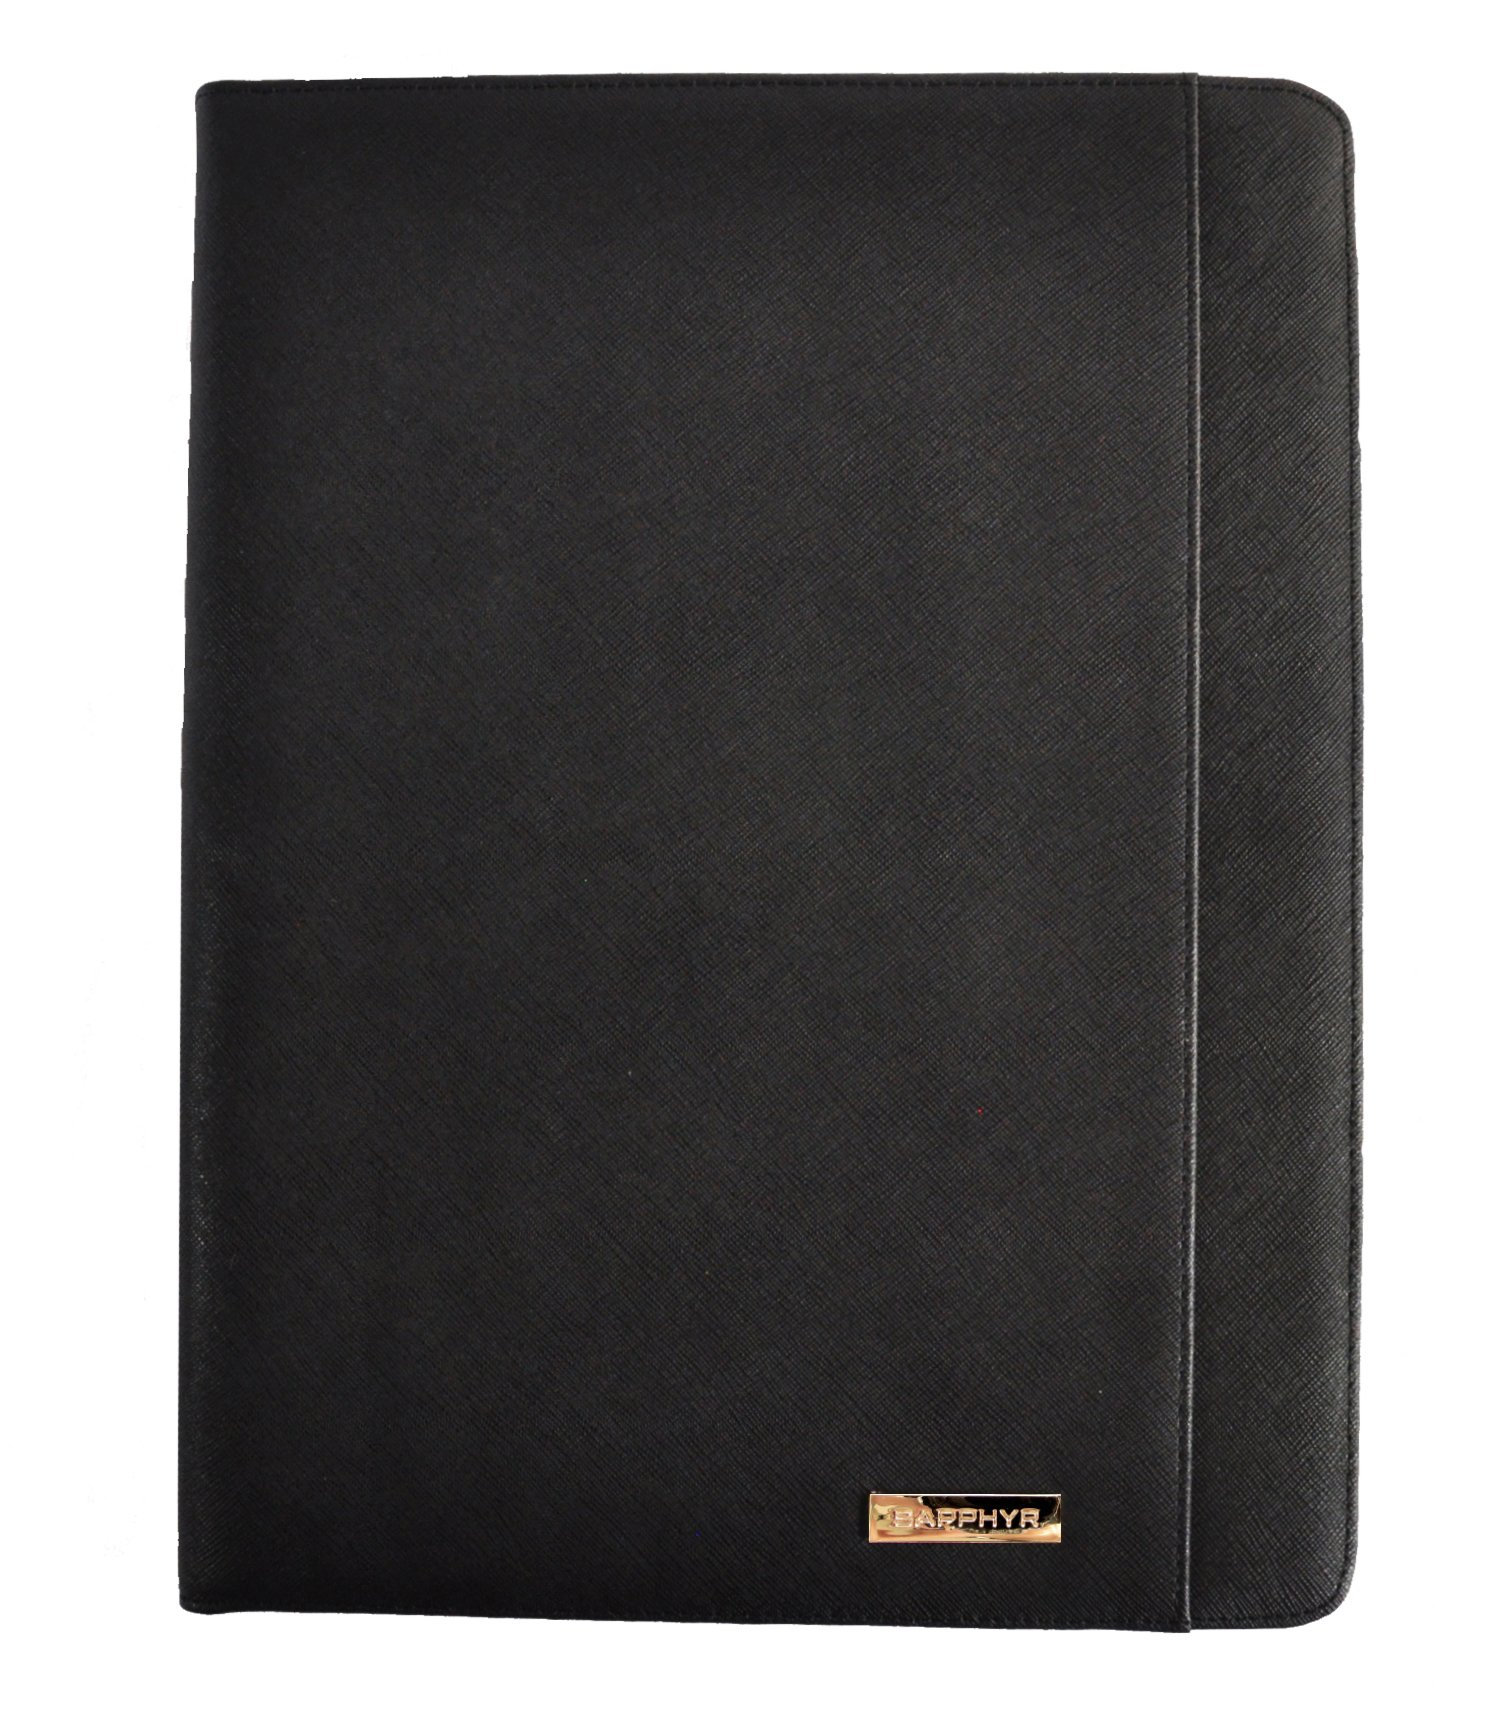 Saffiano Leather Padfolio by Sapphyr | Luxury Business Portfolio Organizer and Writing Pad | Card and Document Storage for Professionals with Included Pen (Black Saffiano)